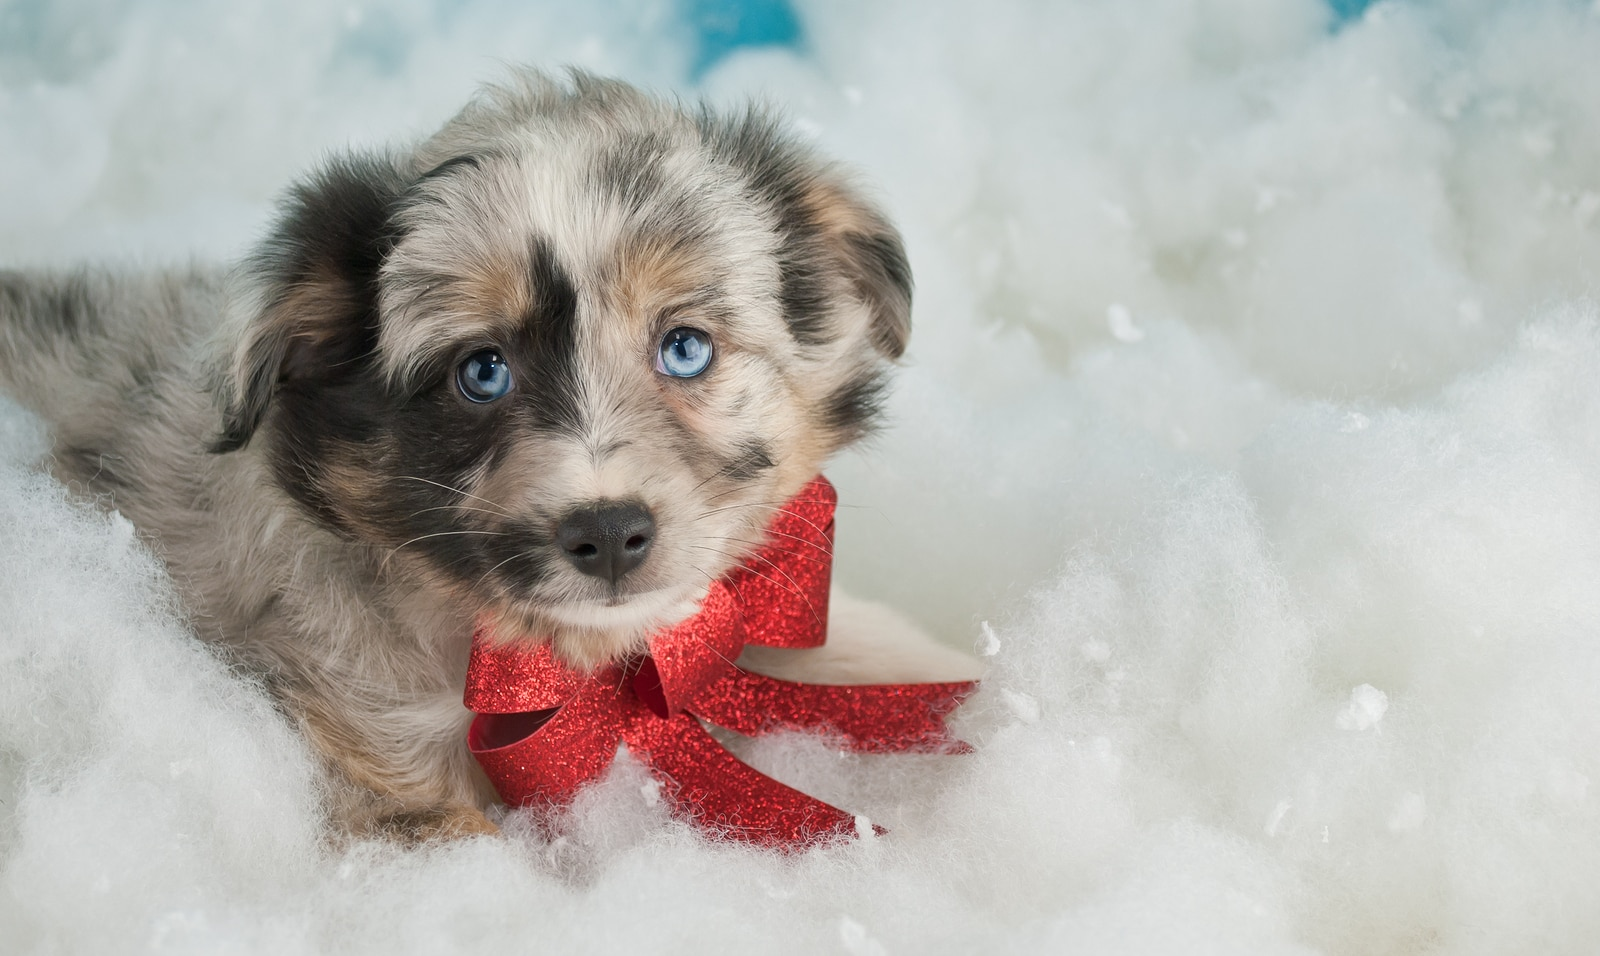 Sweet little Australian Shepherd puppy laying in the snow wearing a red Christmas bow.